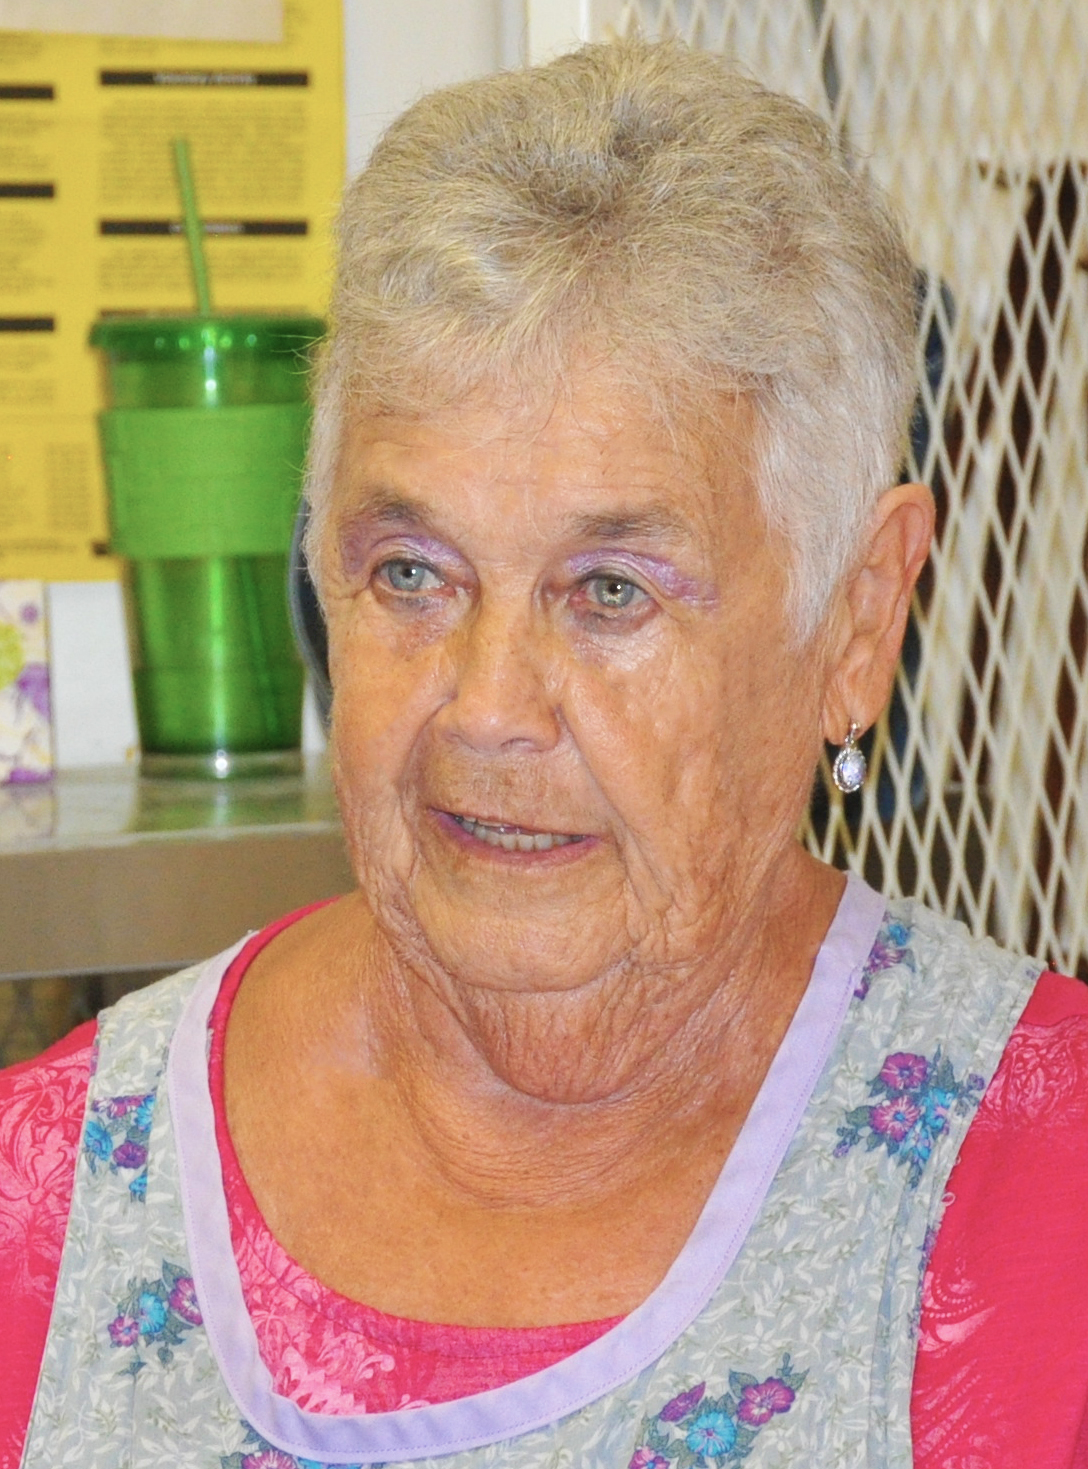 Senior Center Mary